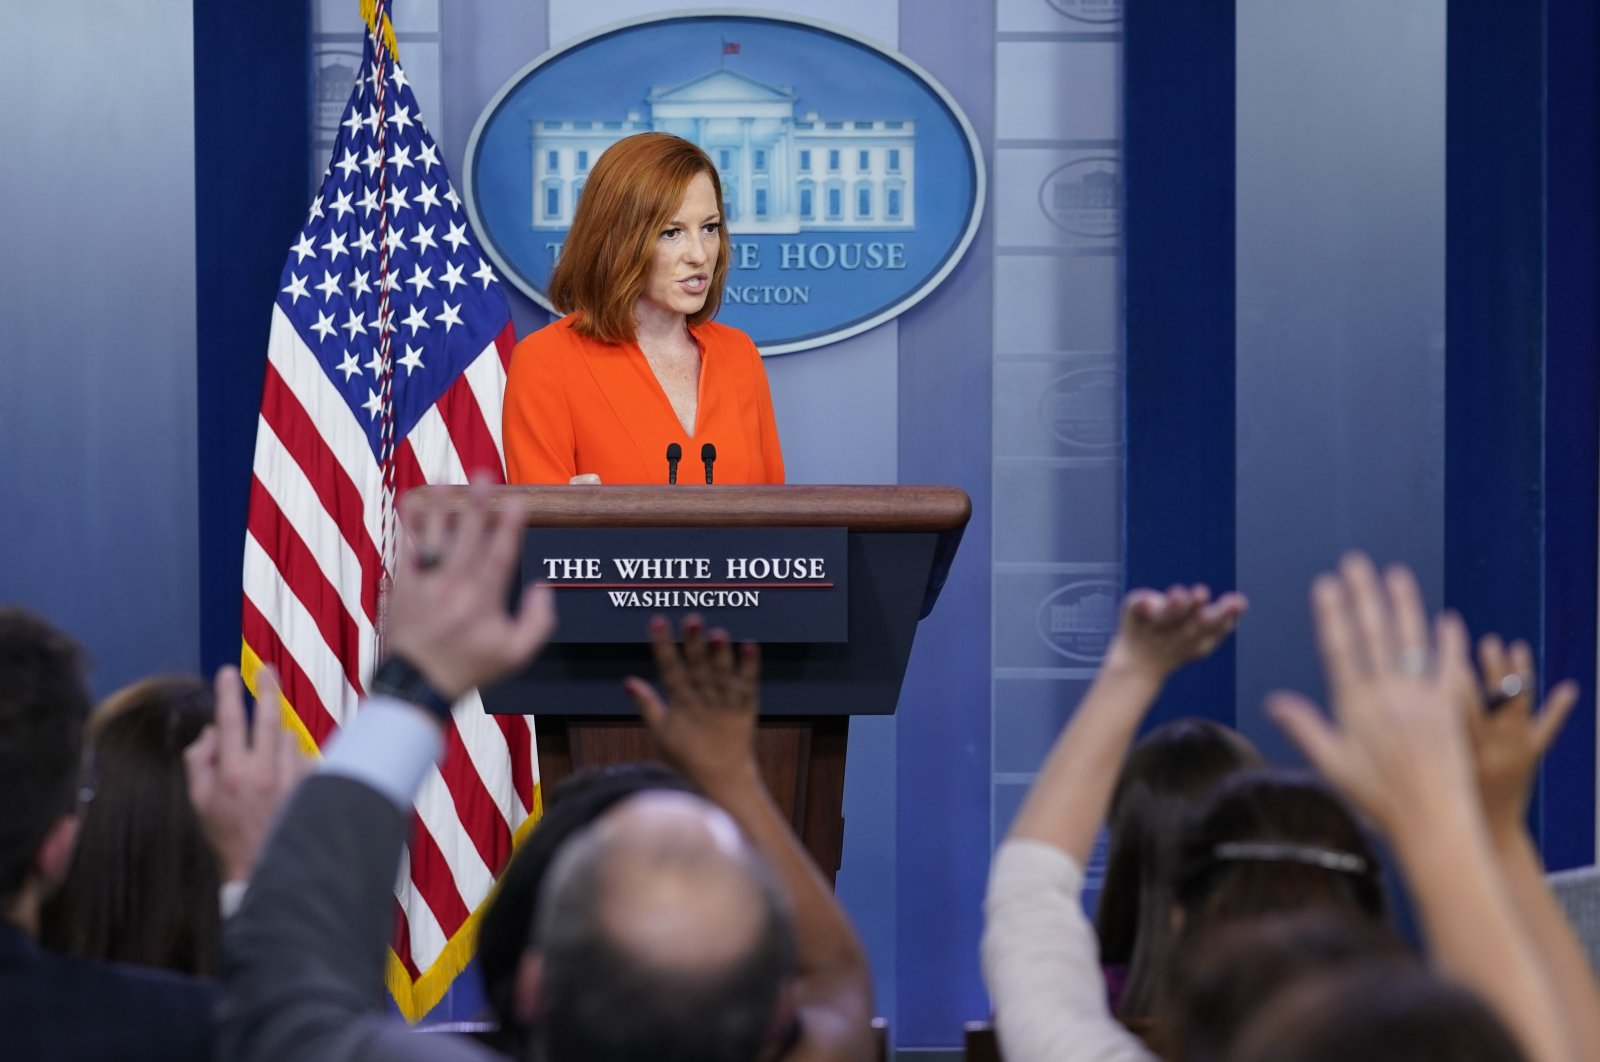 White House Press Secretary Jen Psaki speaks during a daily briefing at the White House in Washington, D.C., the U.S., June 21, 2021. (AP Photo)